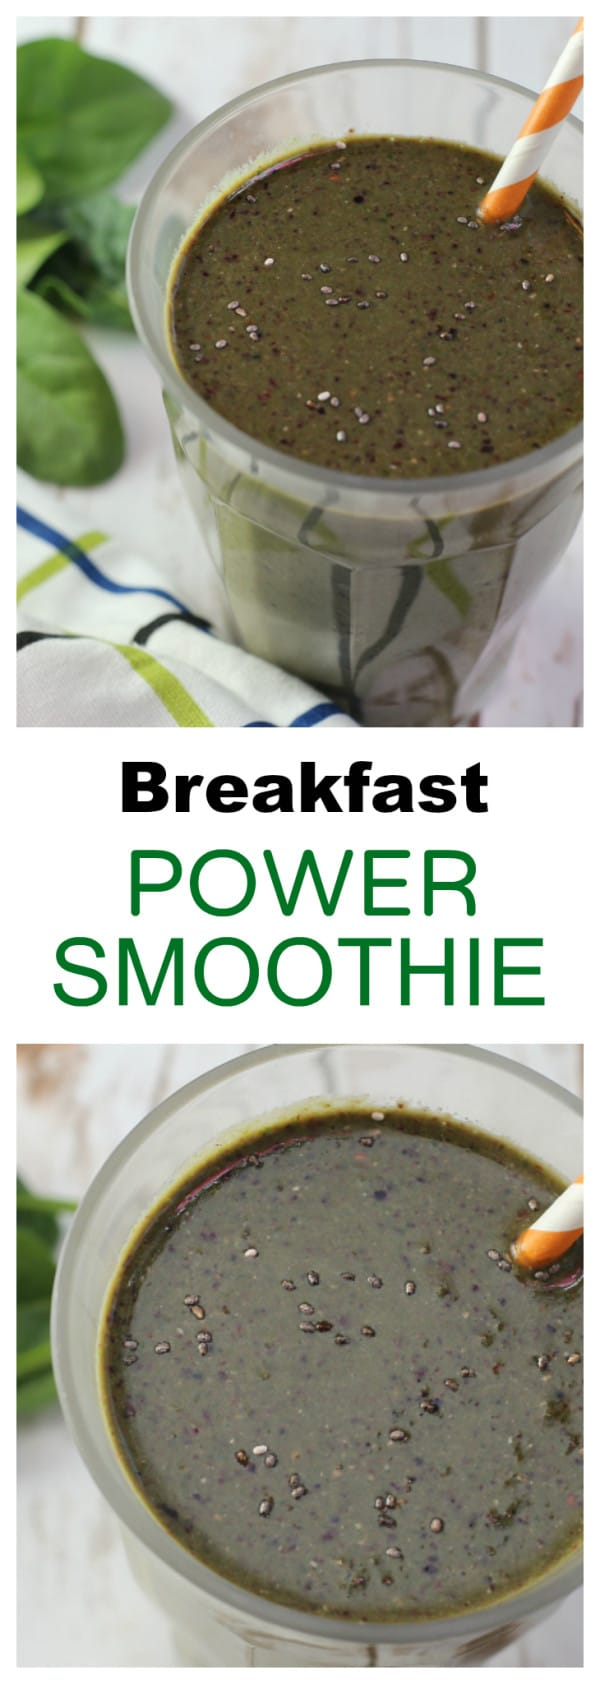 breakfast power smoothie recipe